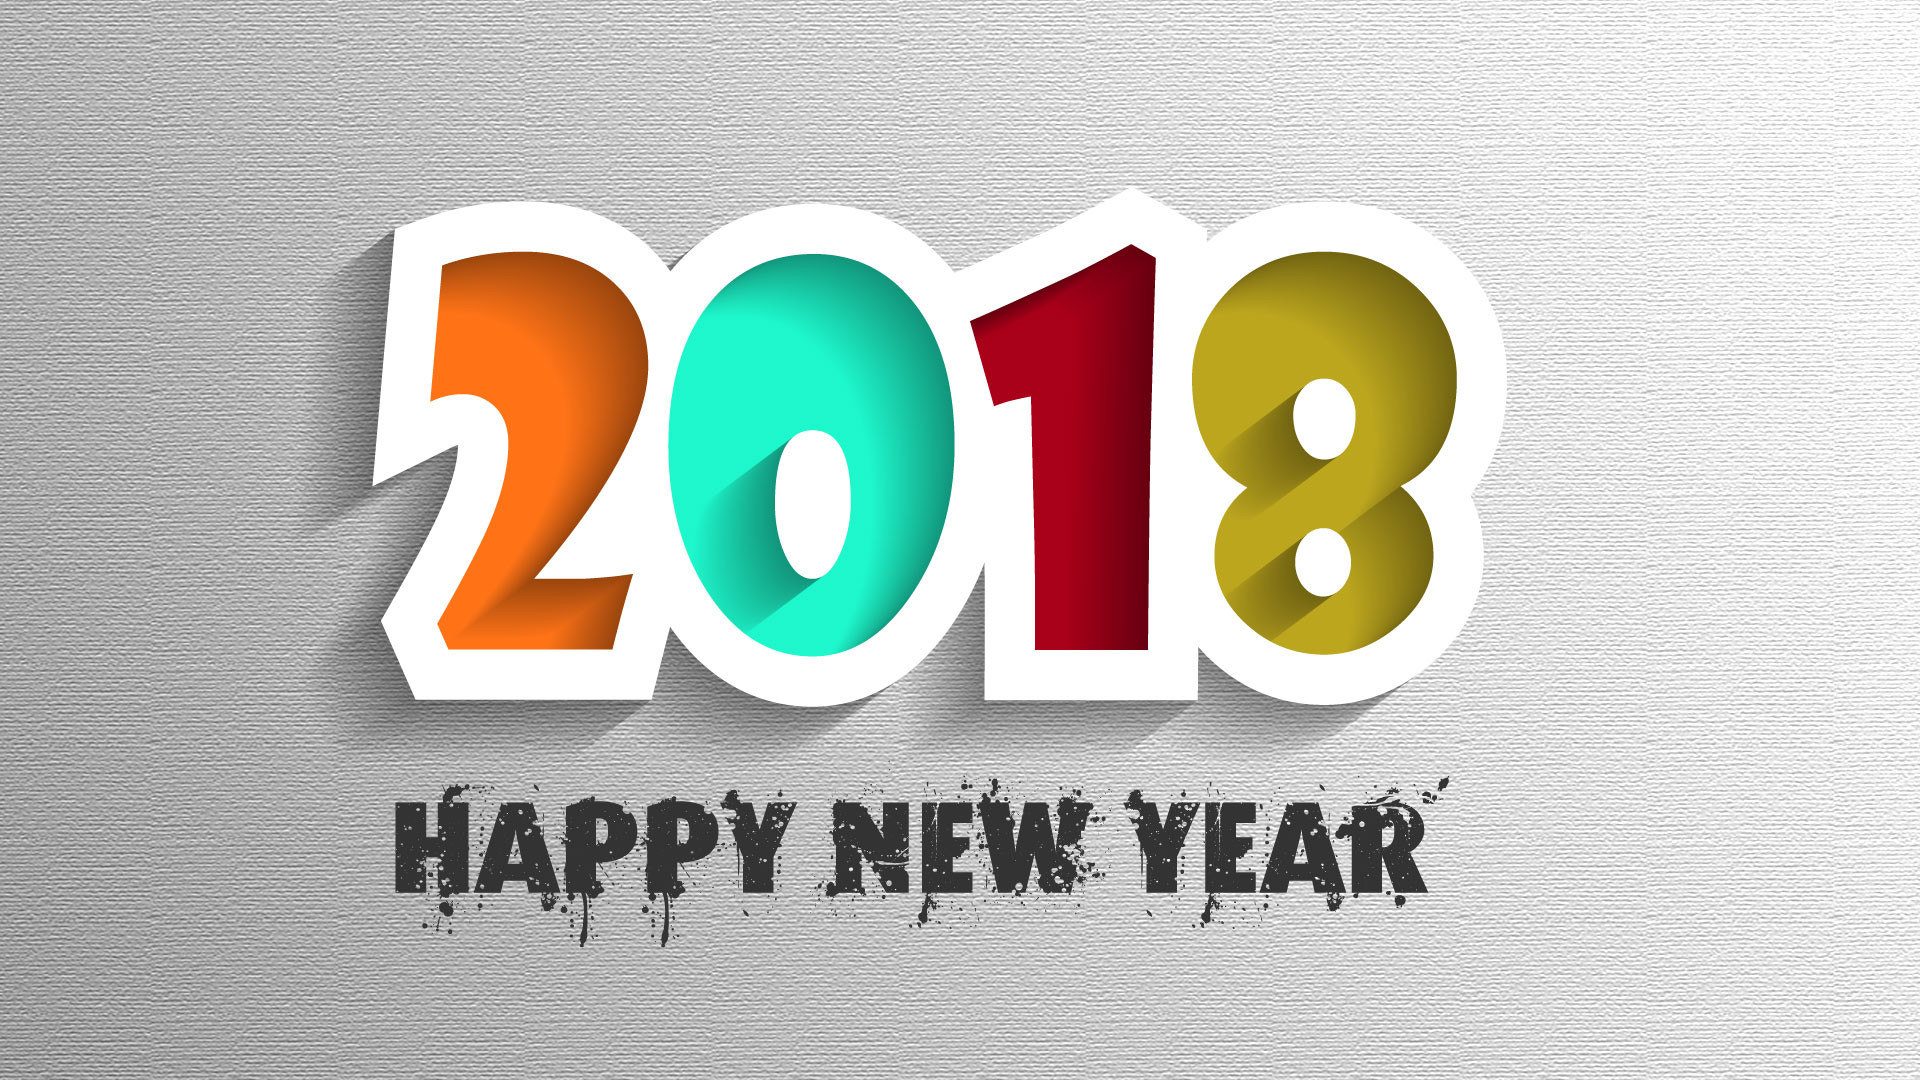 1920x1080 2018 Happy New Year Desktop Wallpaper 62291